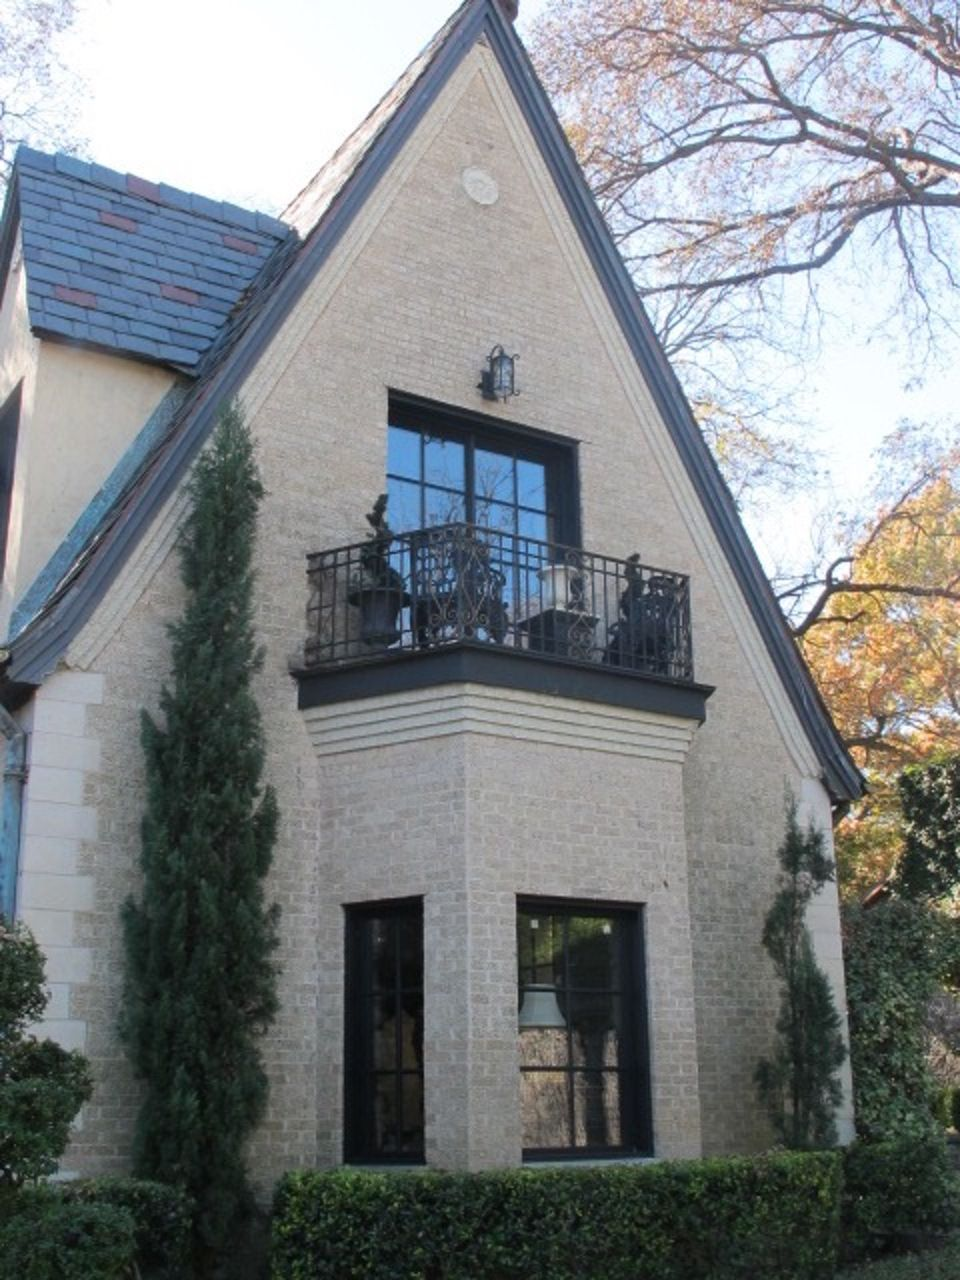 Castle Mansions Home Photo Video Location Shoot Dallas 27.jpg